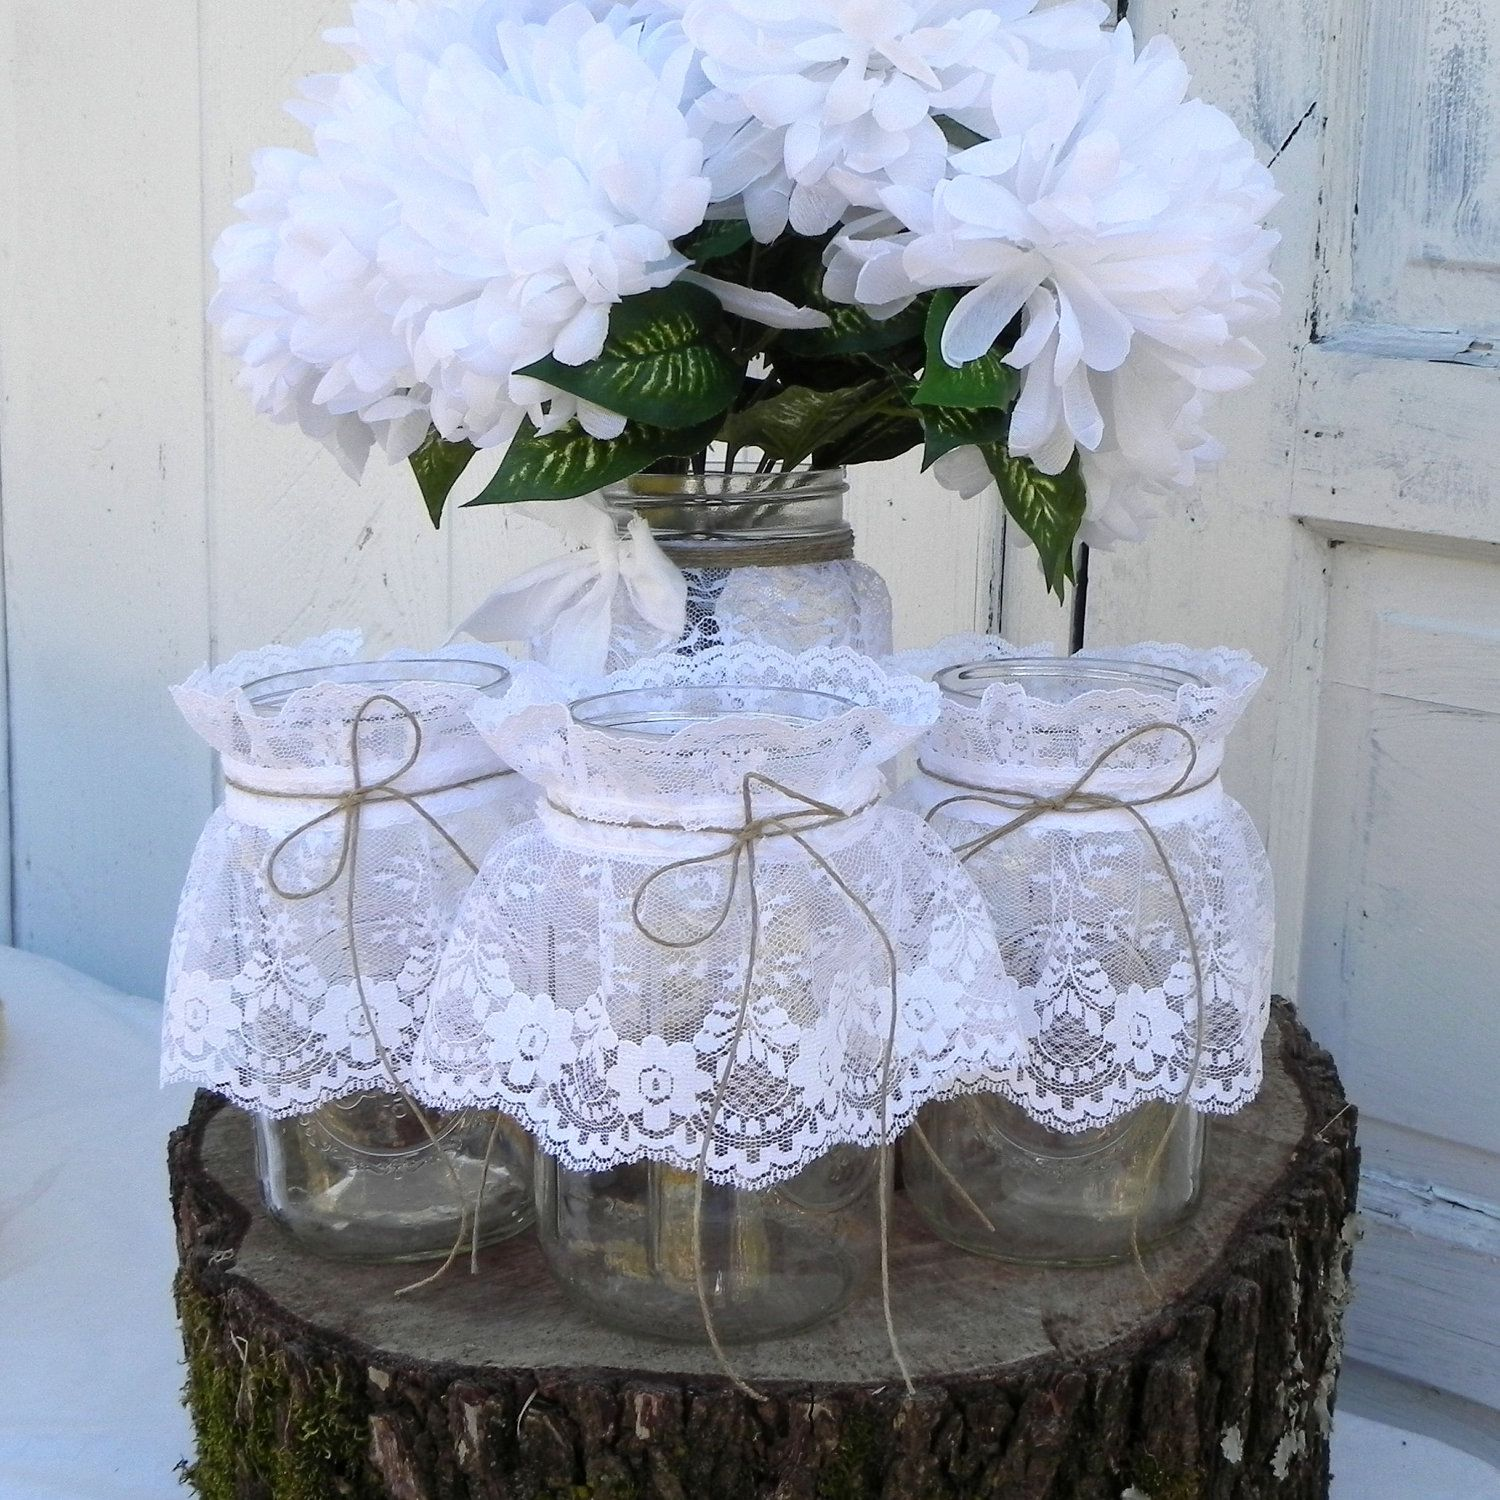 Vintage Wedding Ideas Mason Jars: 3 Rustic Lace Mason Jars Wedding Table Decoration By